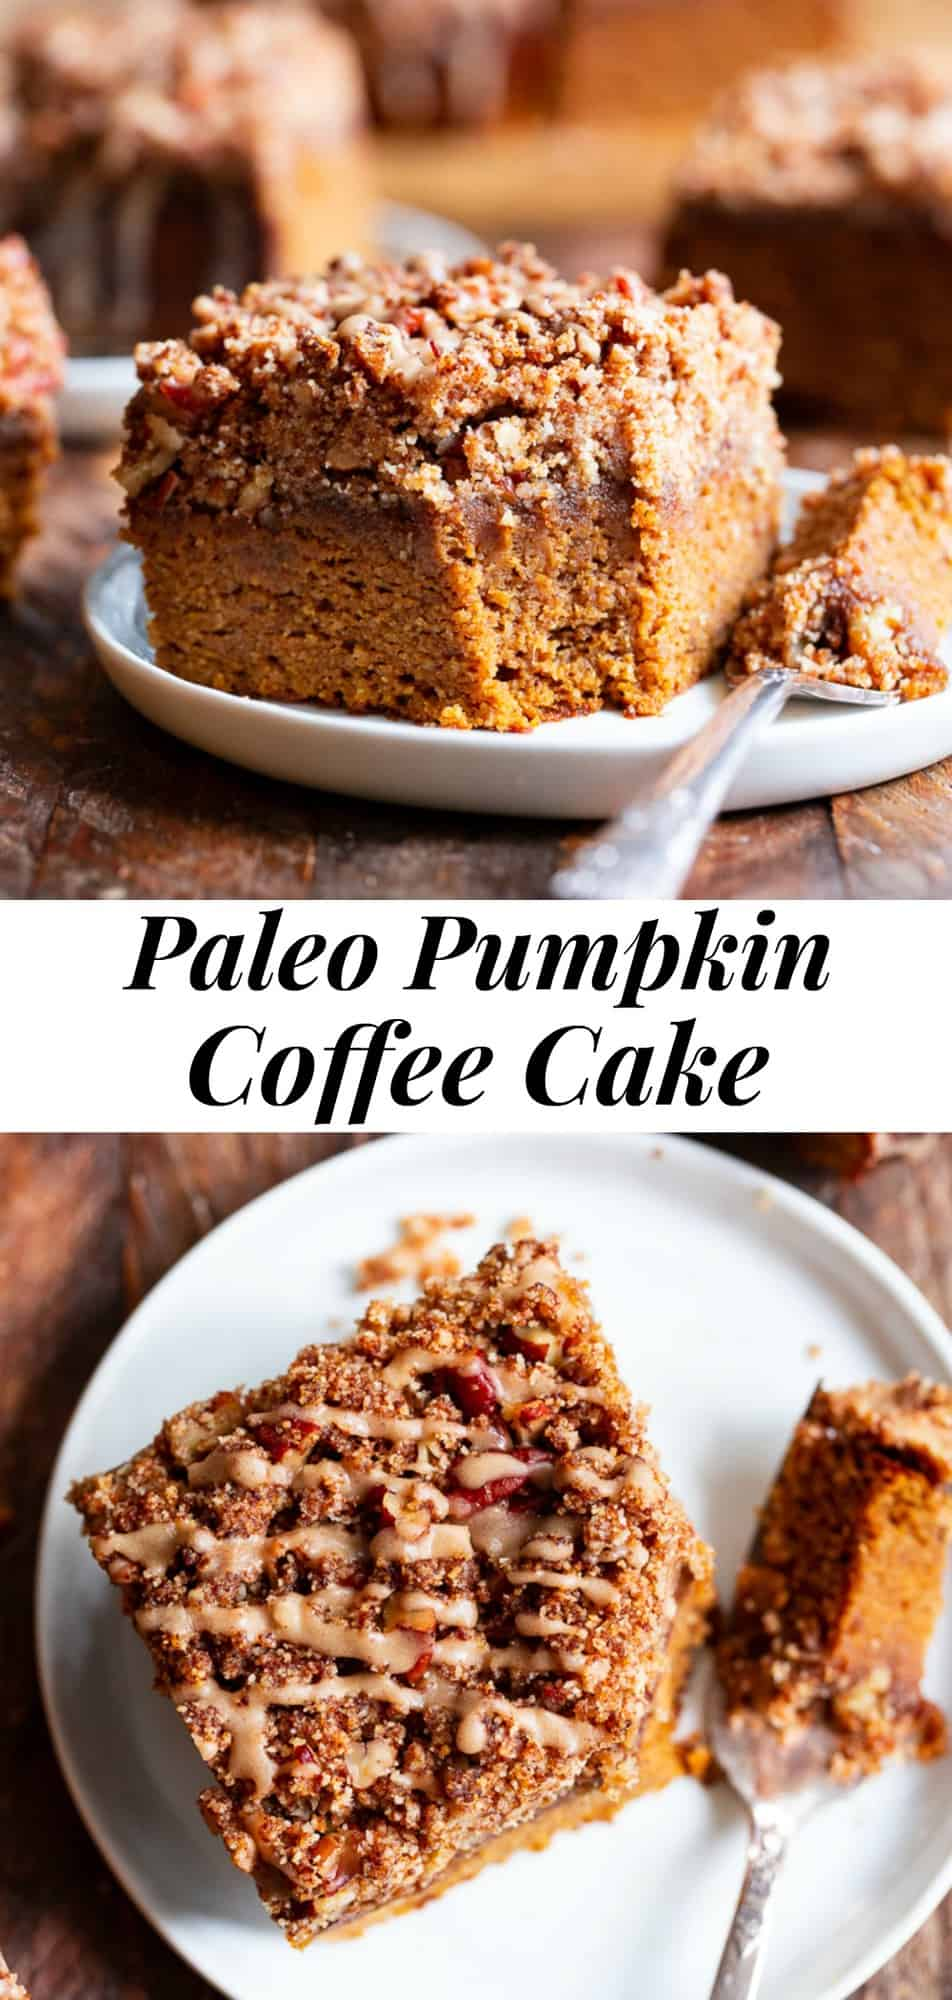 This Paleo Pumpkin Coffee Cake has it all! Moist cake with sweet fall spices topped with an addicting crumb topping and maple icing! Fancy enough to serve to brunch guests but so delicious that you'll want to have some to snack on all season long! #paleo #cleaneating #pumpkin #paleobaking #glutenfree